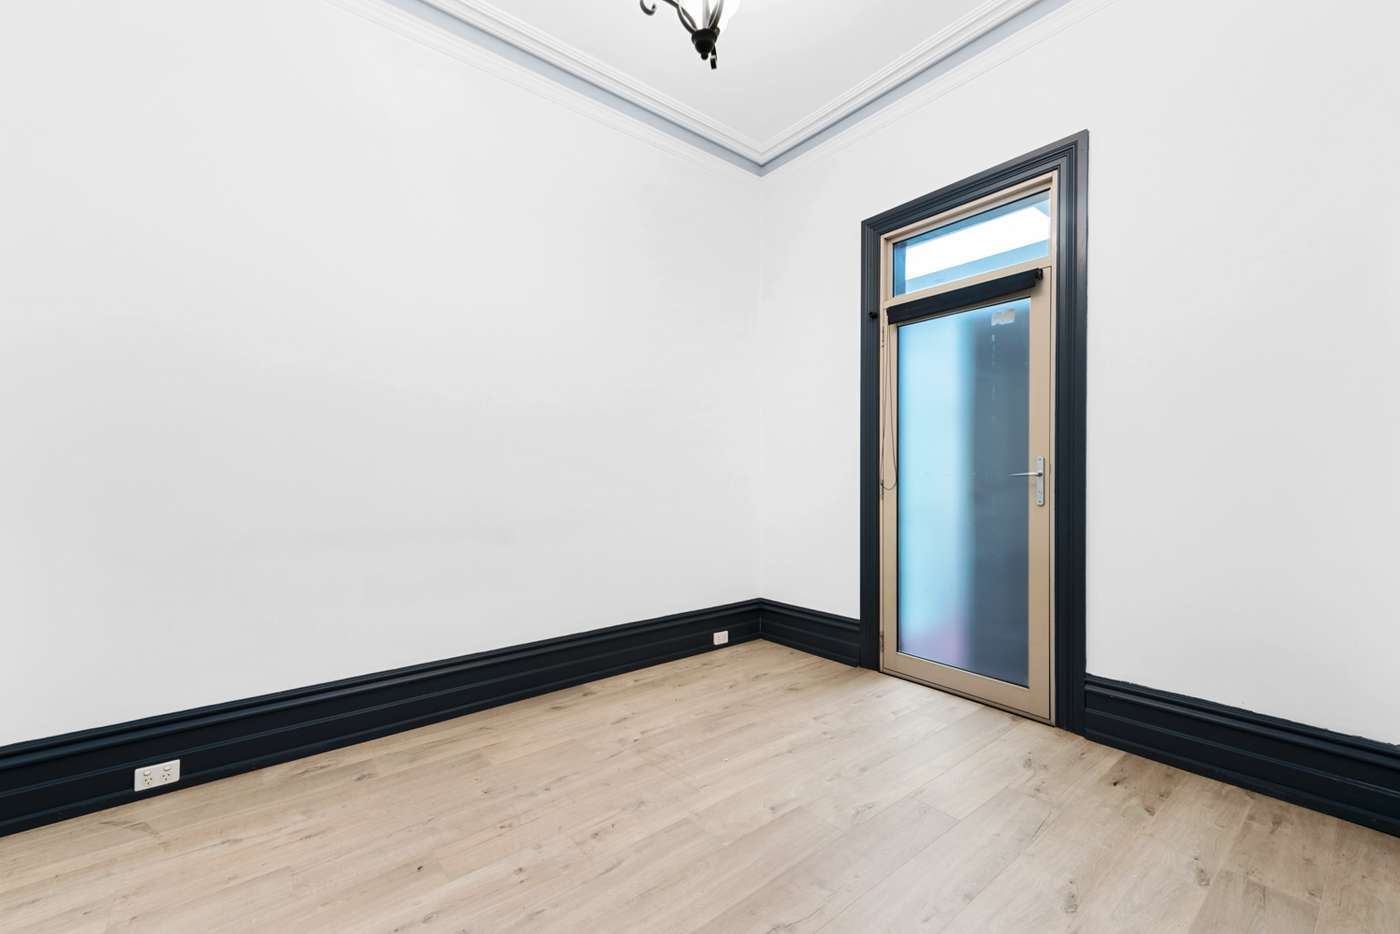 Sixth view of Homely house listing, 143 Peel Street, North Melbourne VIC 3051